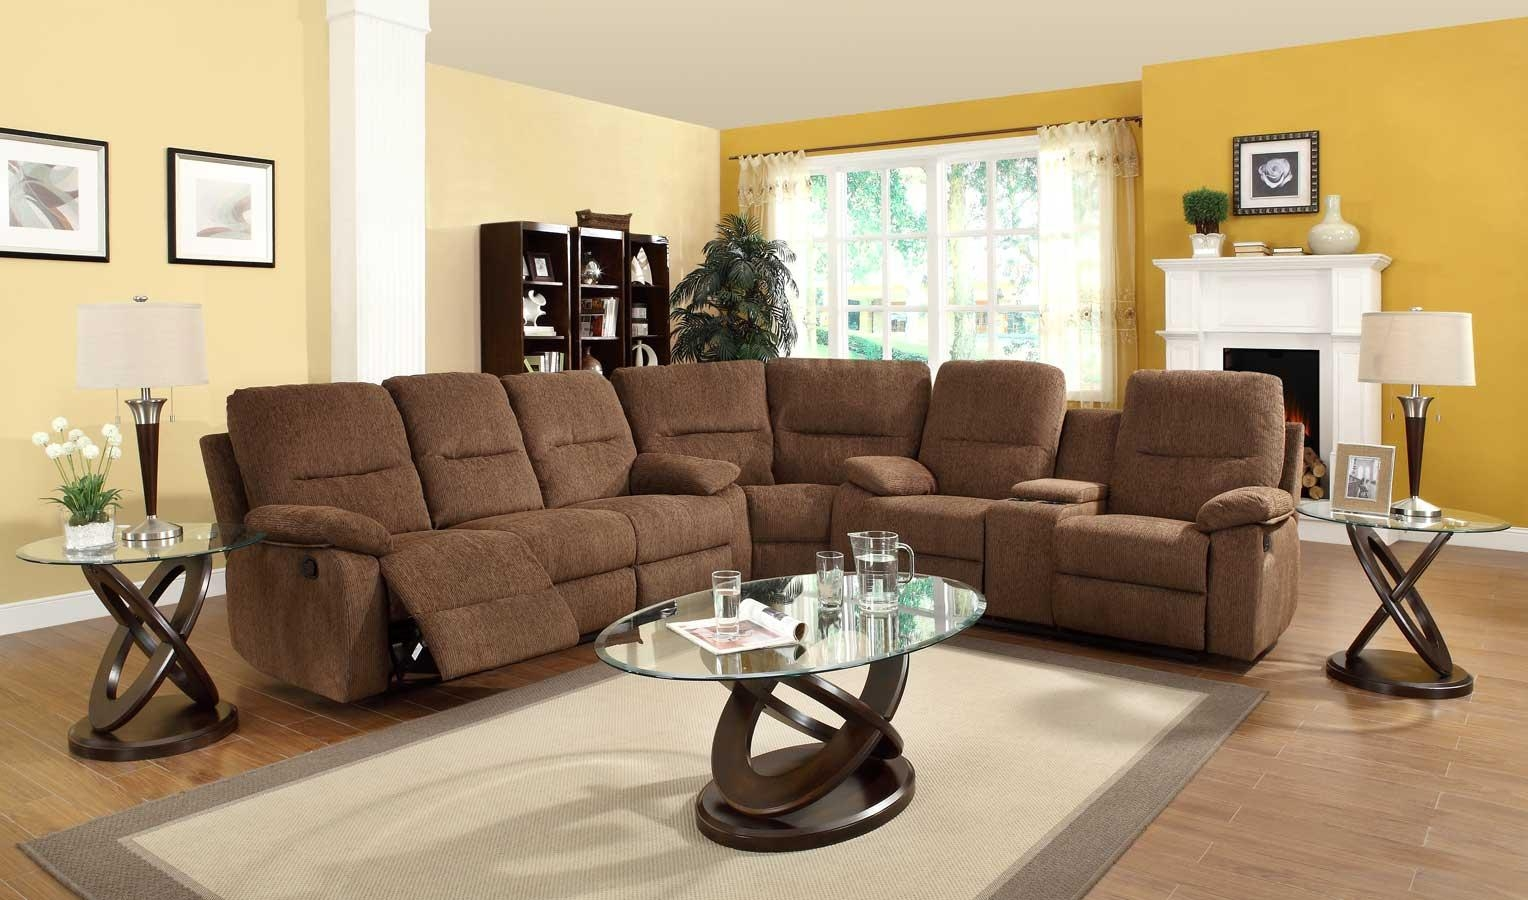 Homelegance Marianna Modular Reclining Sectional Sofa Set – Dark Inside Chenille Sectionals (View 13 of 15)